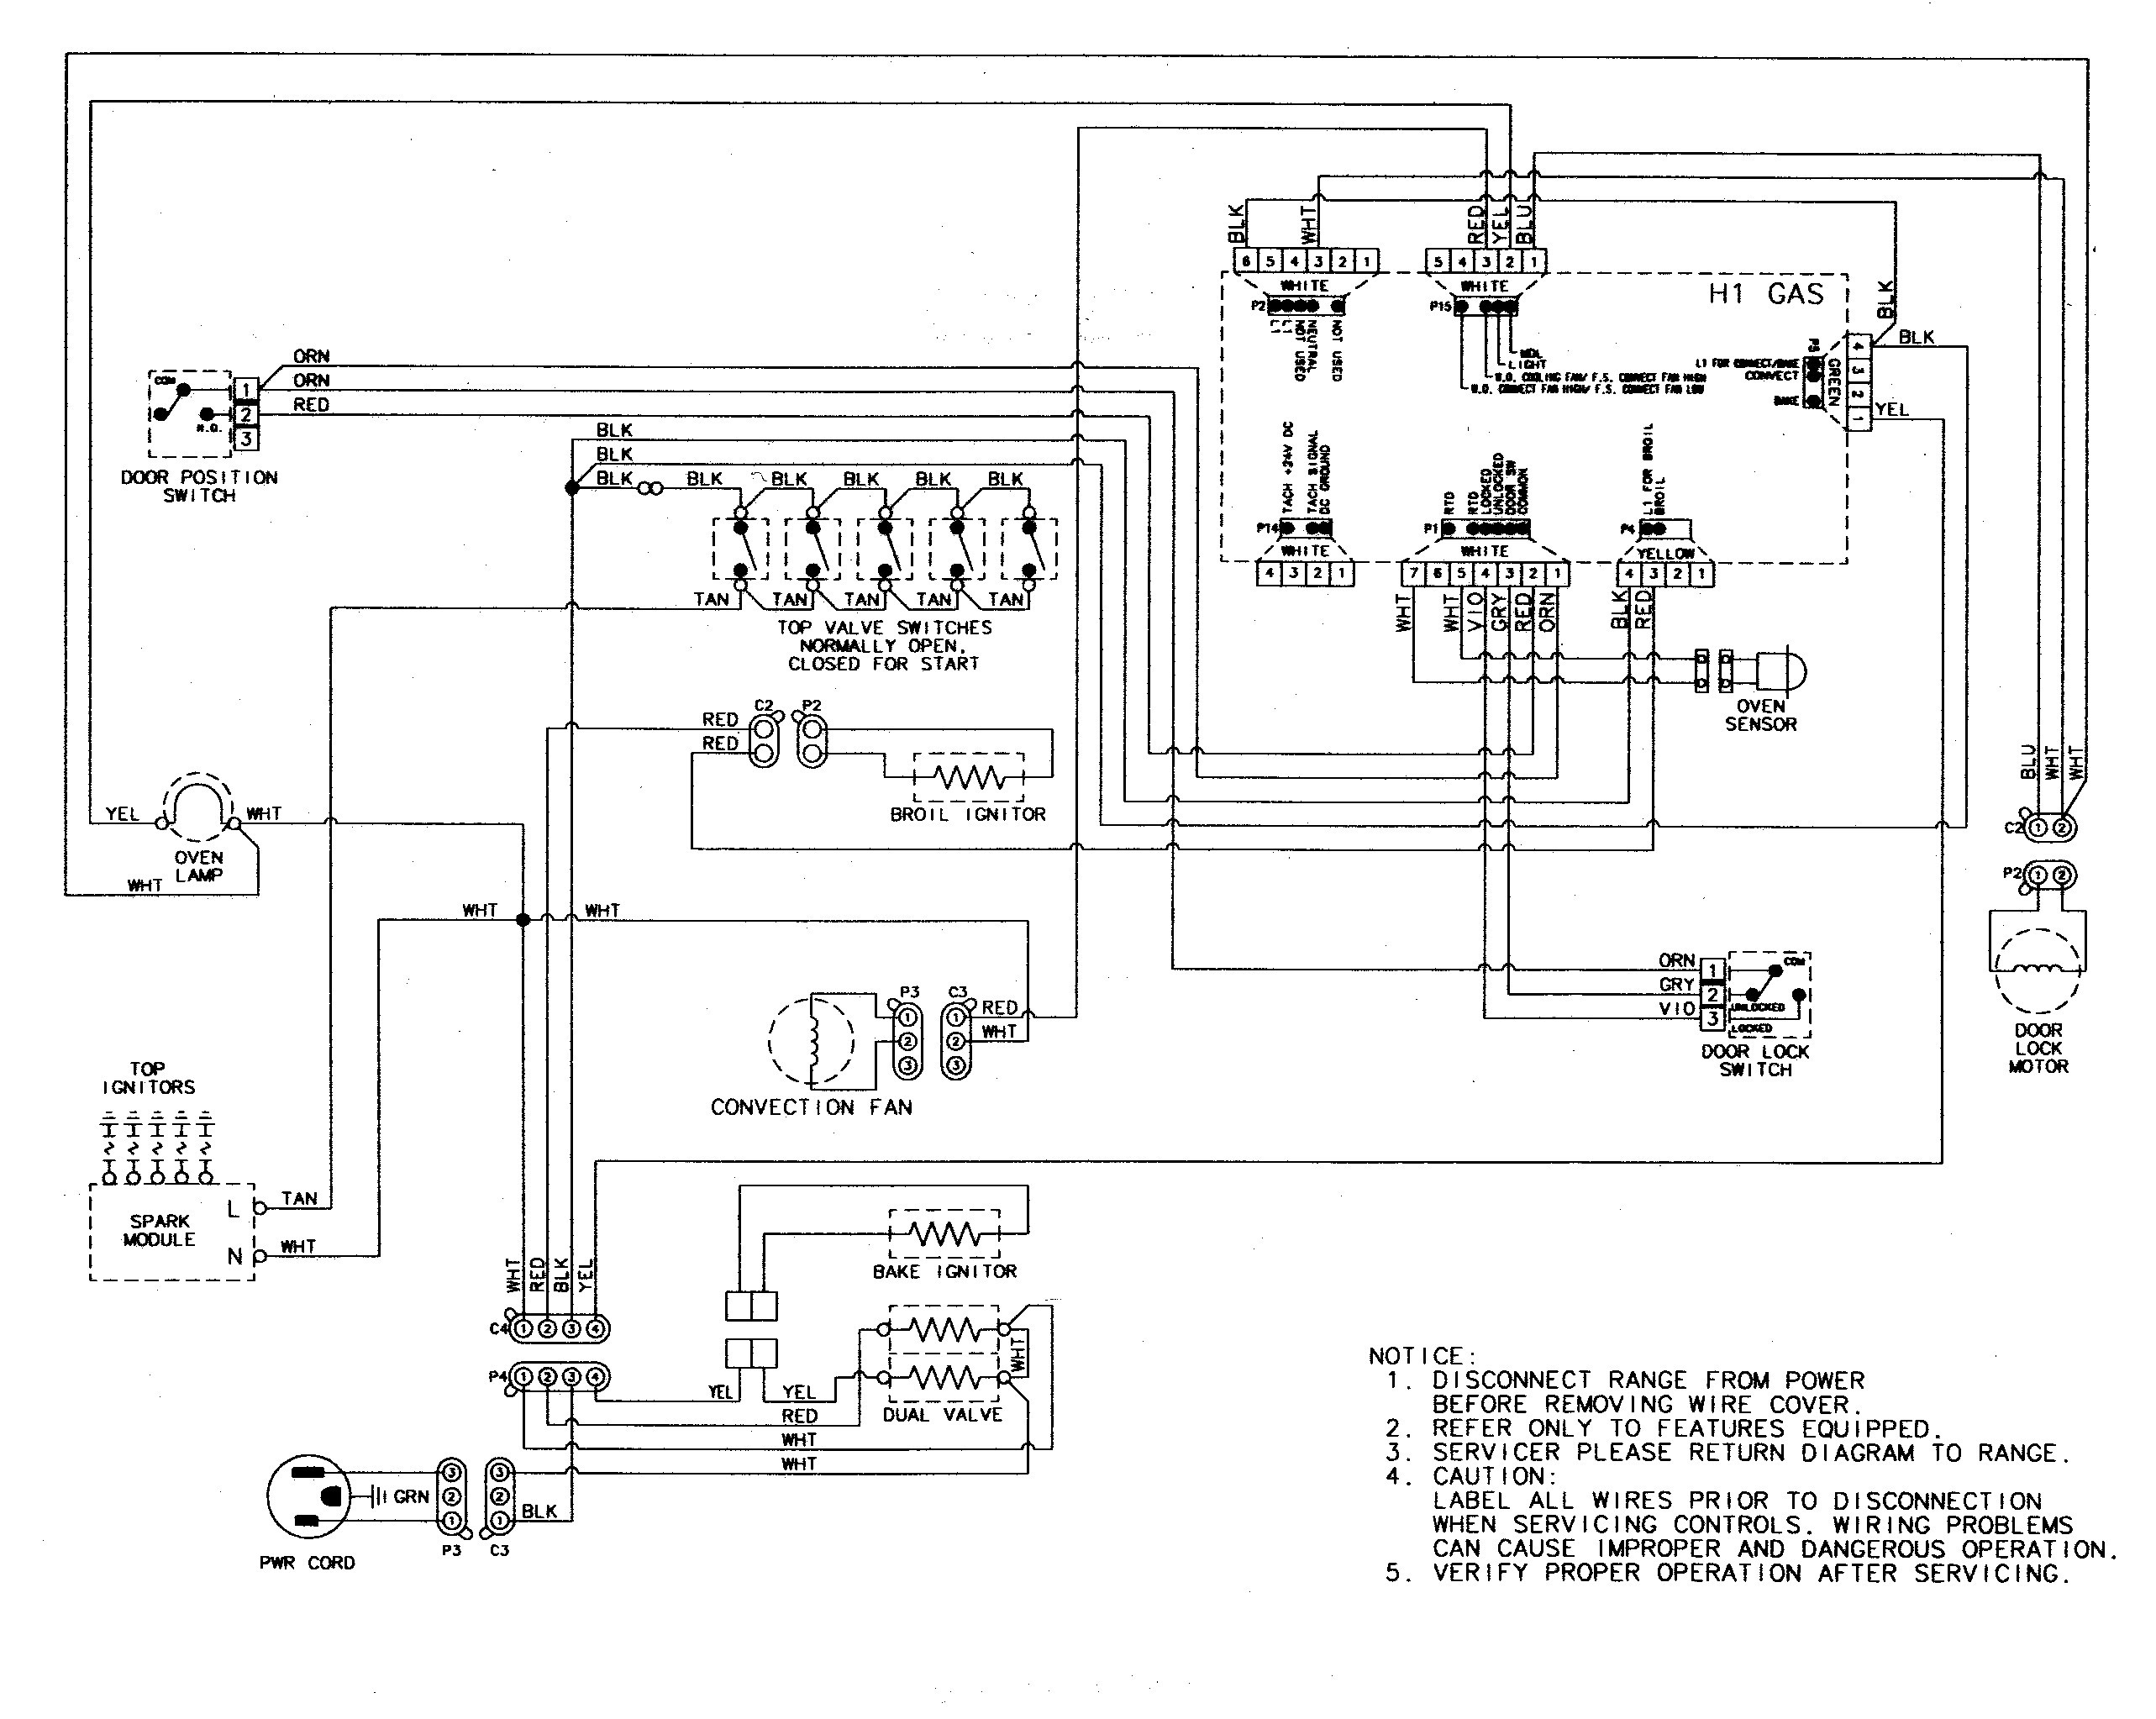 Whirlpool Dryer Timer Wiring Diagram from wholefoodsonabudget.com